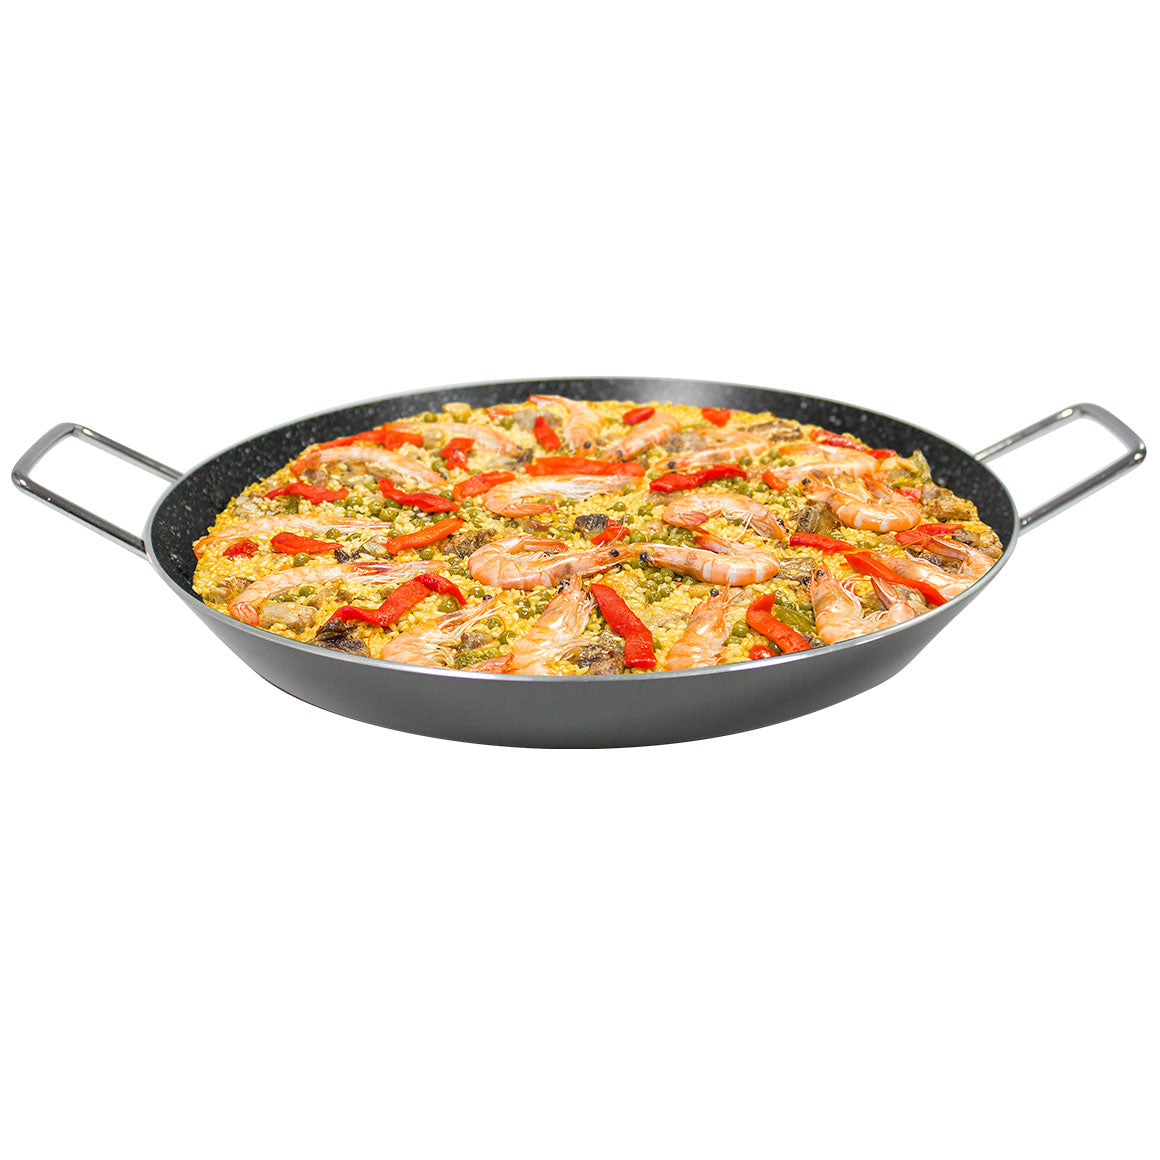 Stone particle paella pan to maintain flavour | Best paella's in your home | 26 cm